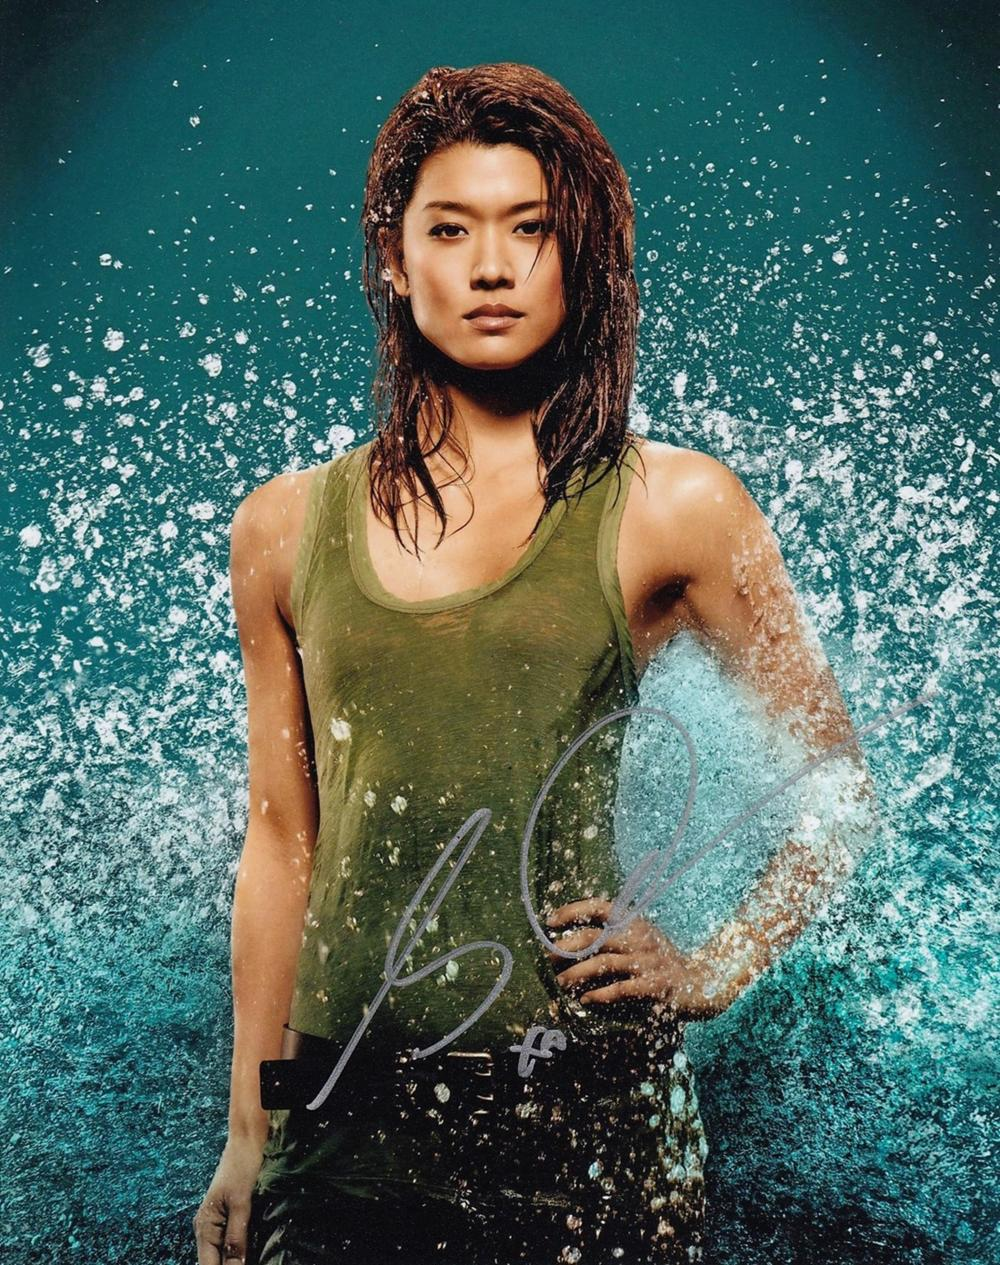 Blowout Sale! Hawaii Five-0 Grace Park hand signed 10x8 photo This beautiful 10x8 hand signed